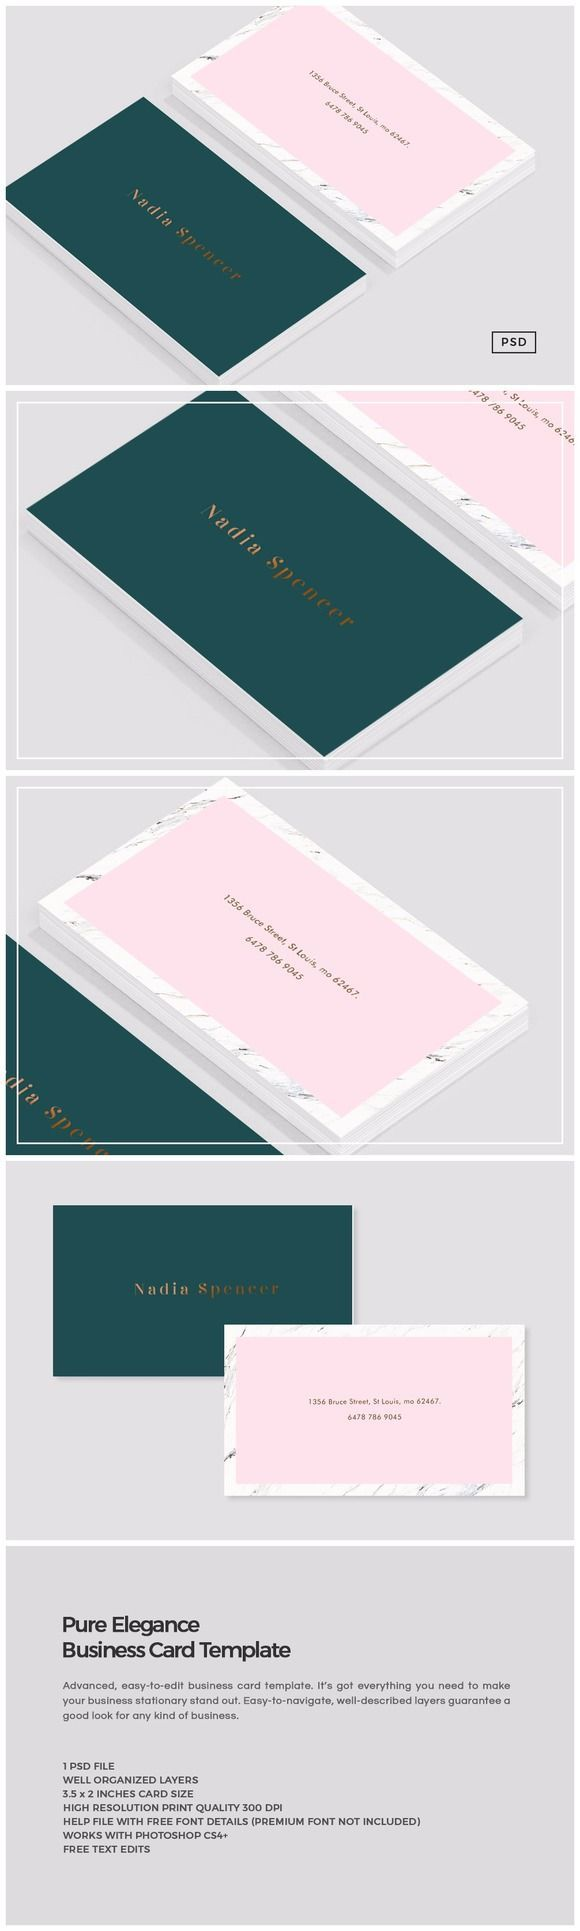 Best 25 best business cards ideas on pinterest creative best 25 best business cards ideas on pinterest creative business card designs business check printing and ups printing magicingreecefo Image collections